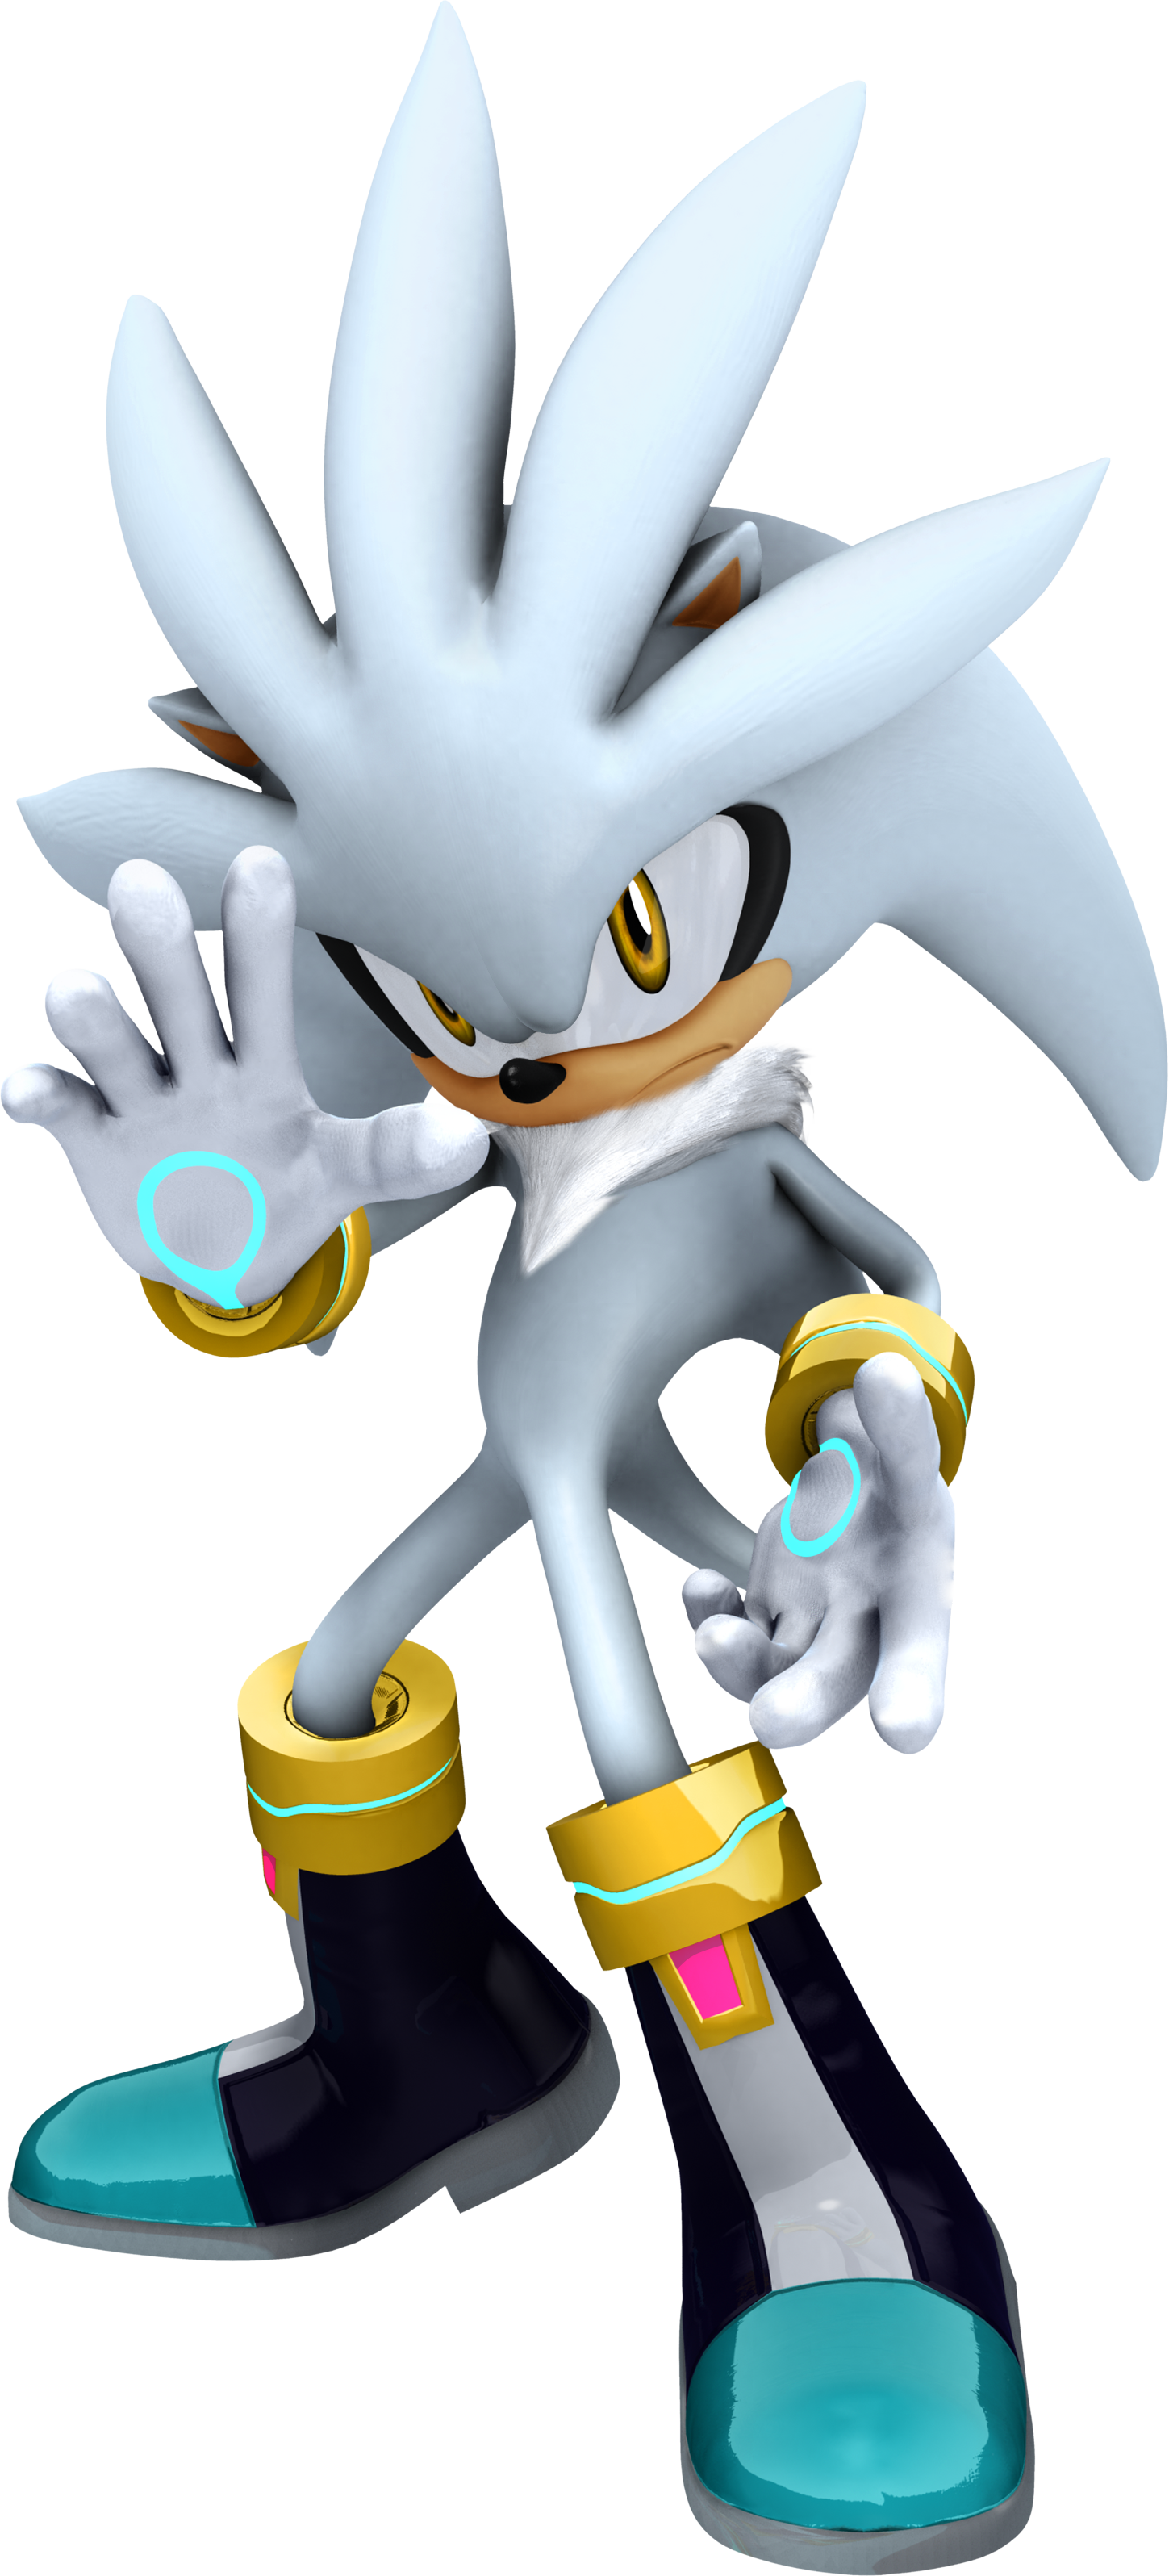 Super hedgehogs: super silver, super sonic, and super shadow.